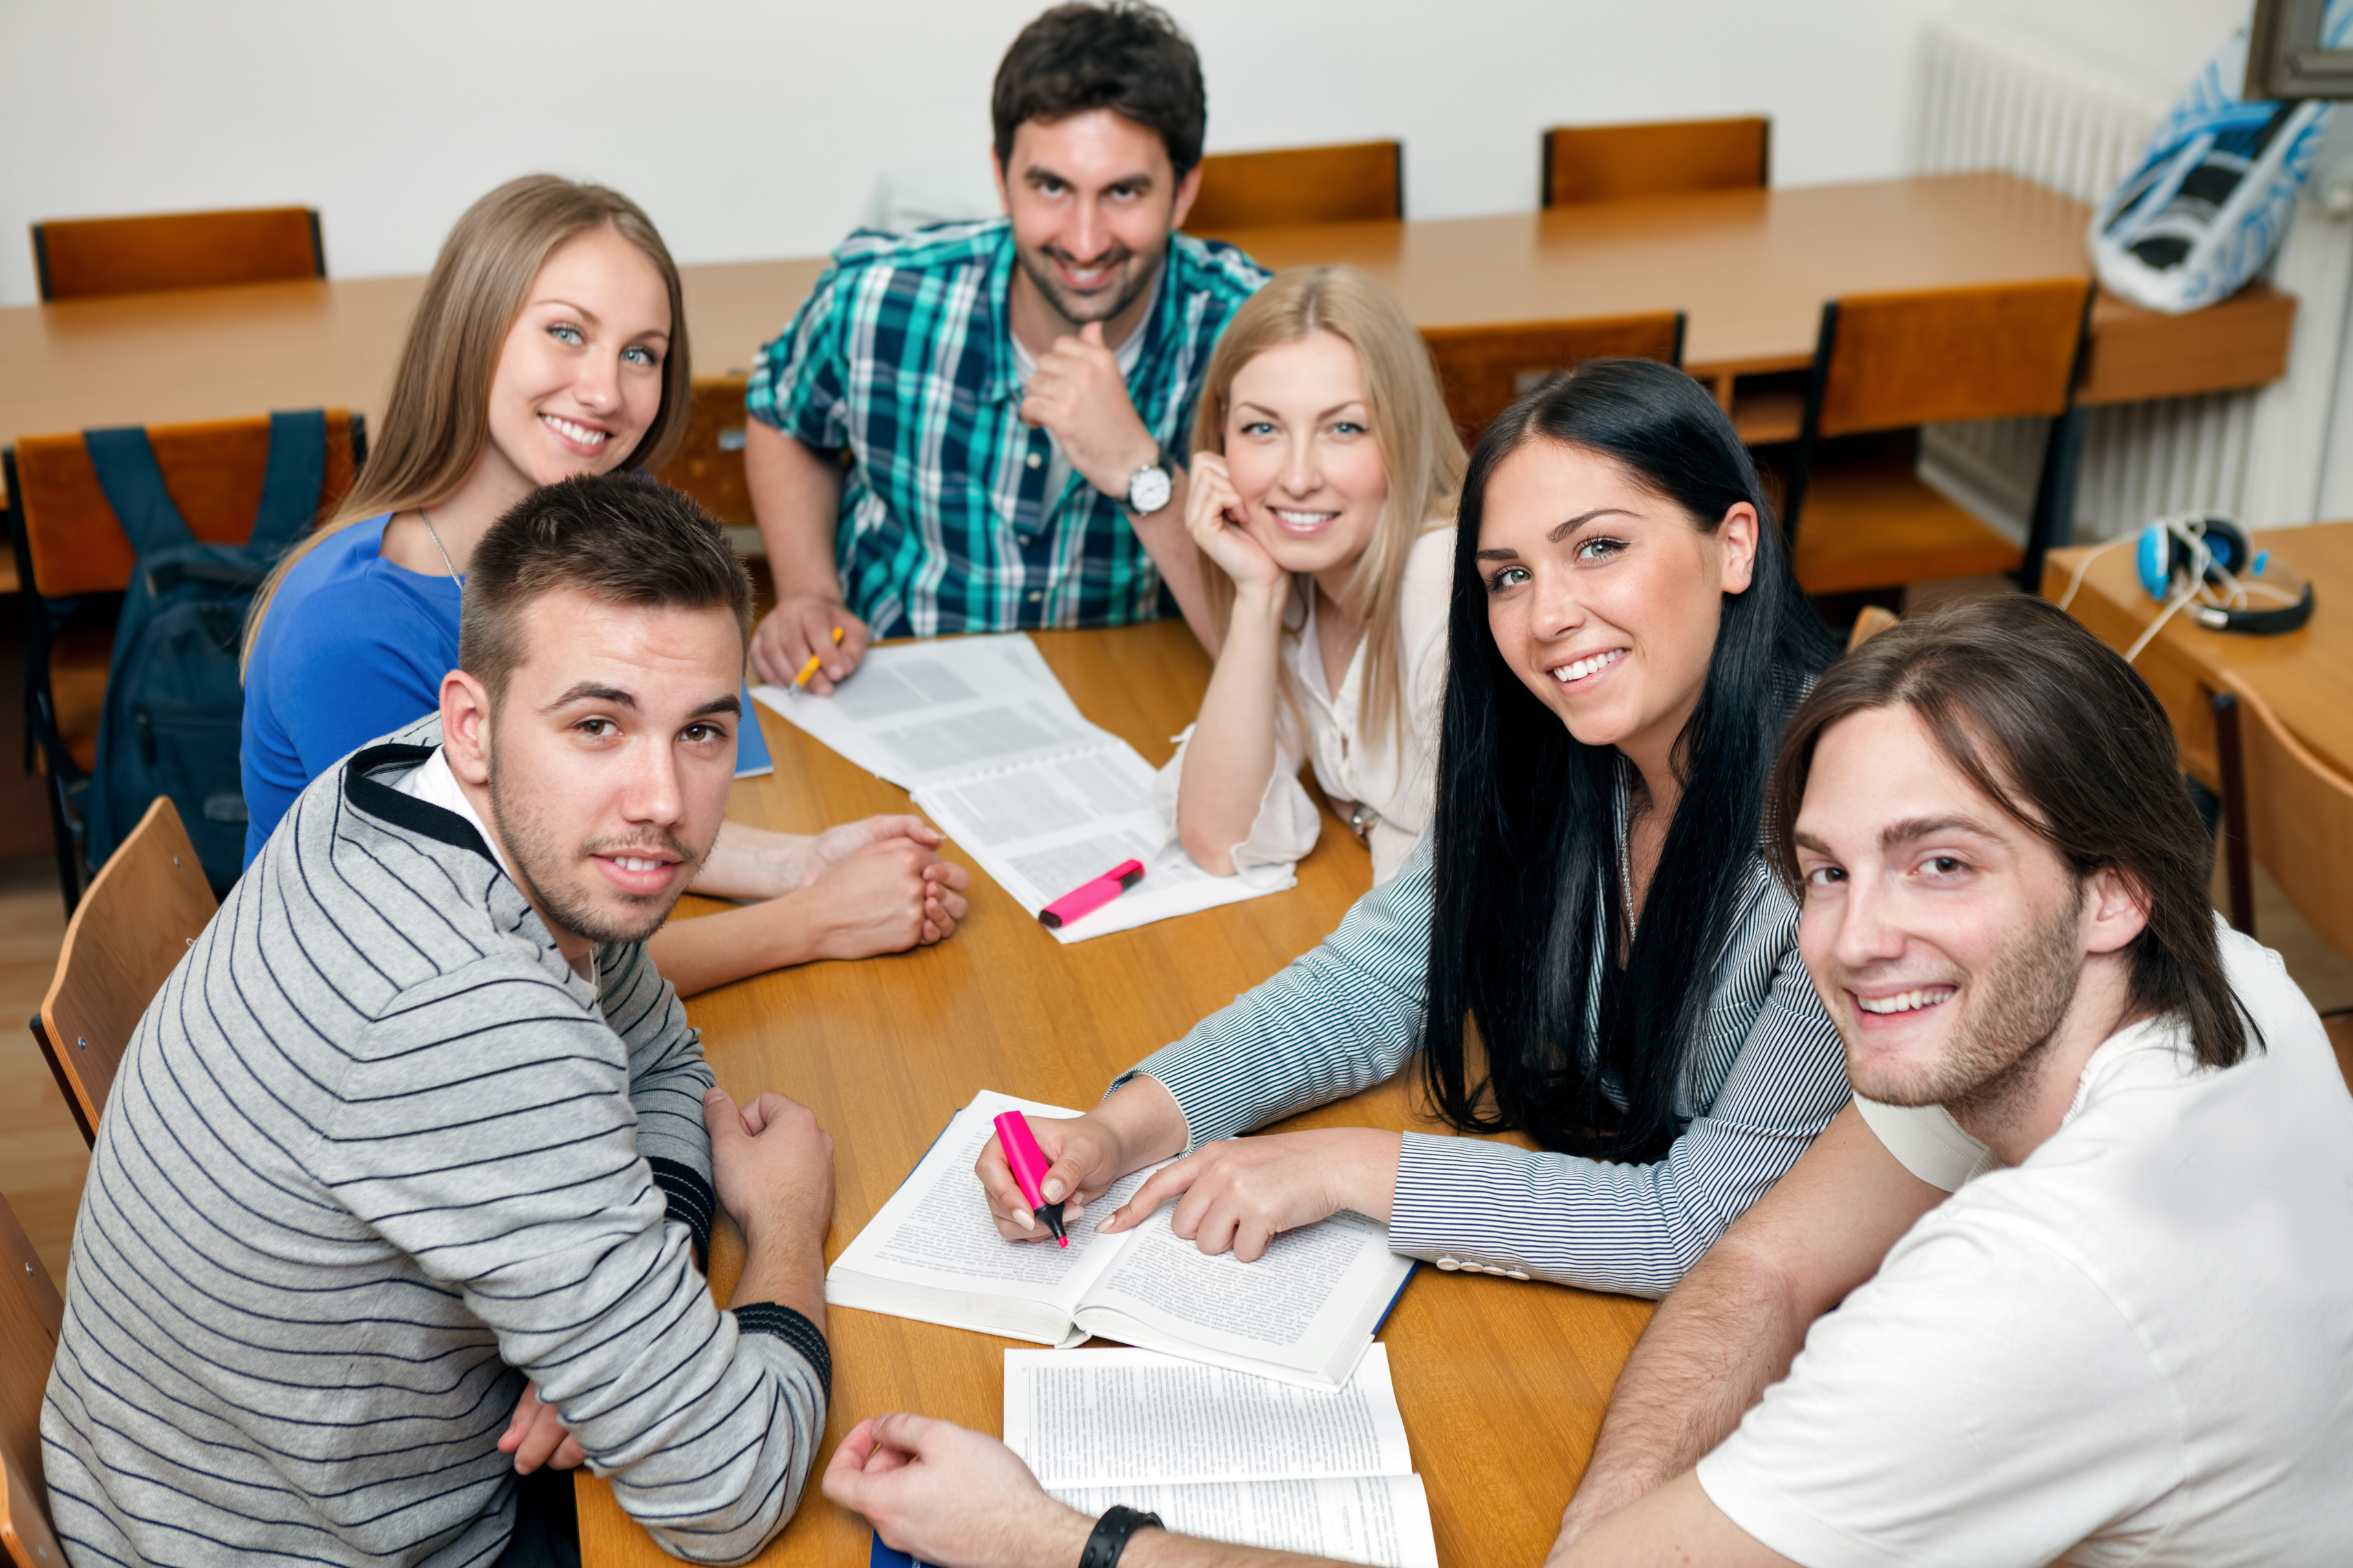 essays myself student Sample student essays these sample student essays have been included in this web site to provide writing teachers with essays that.